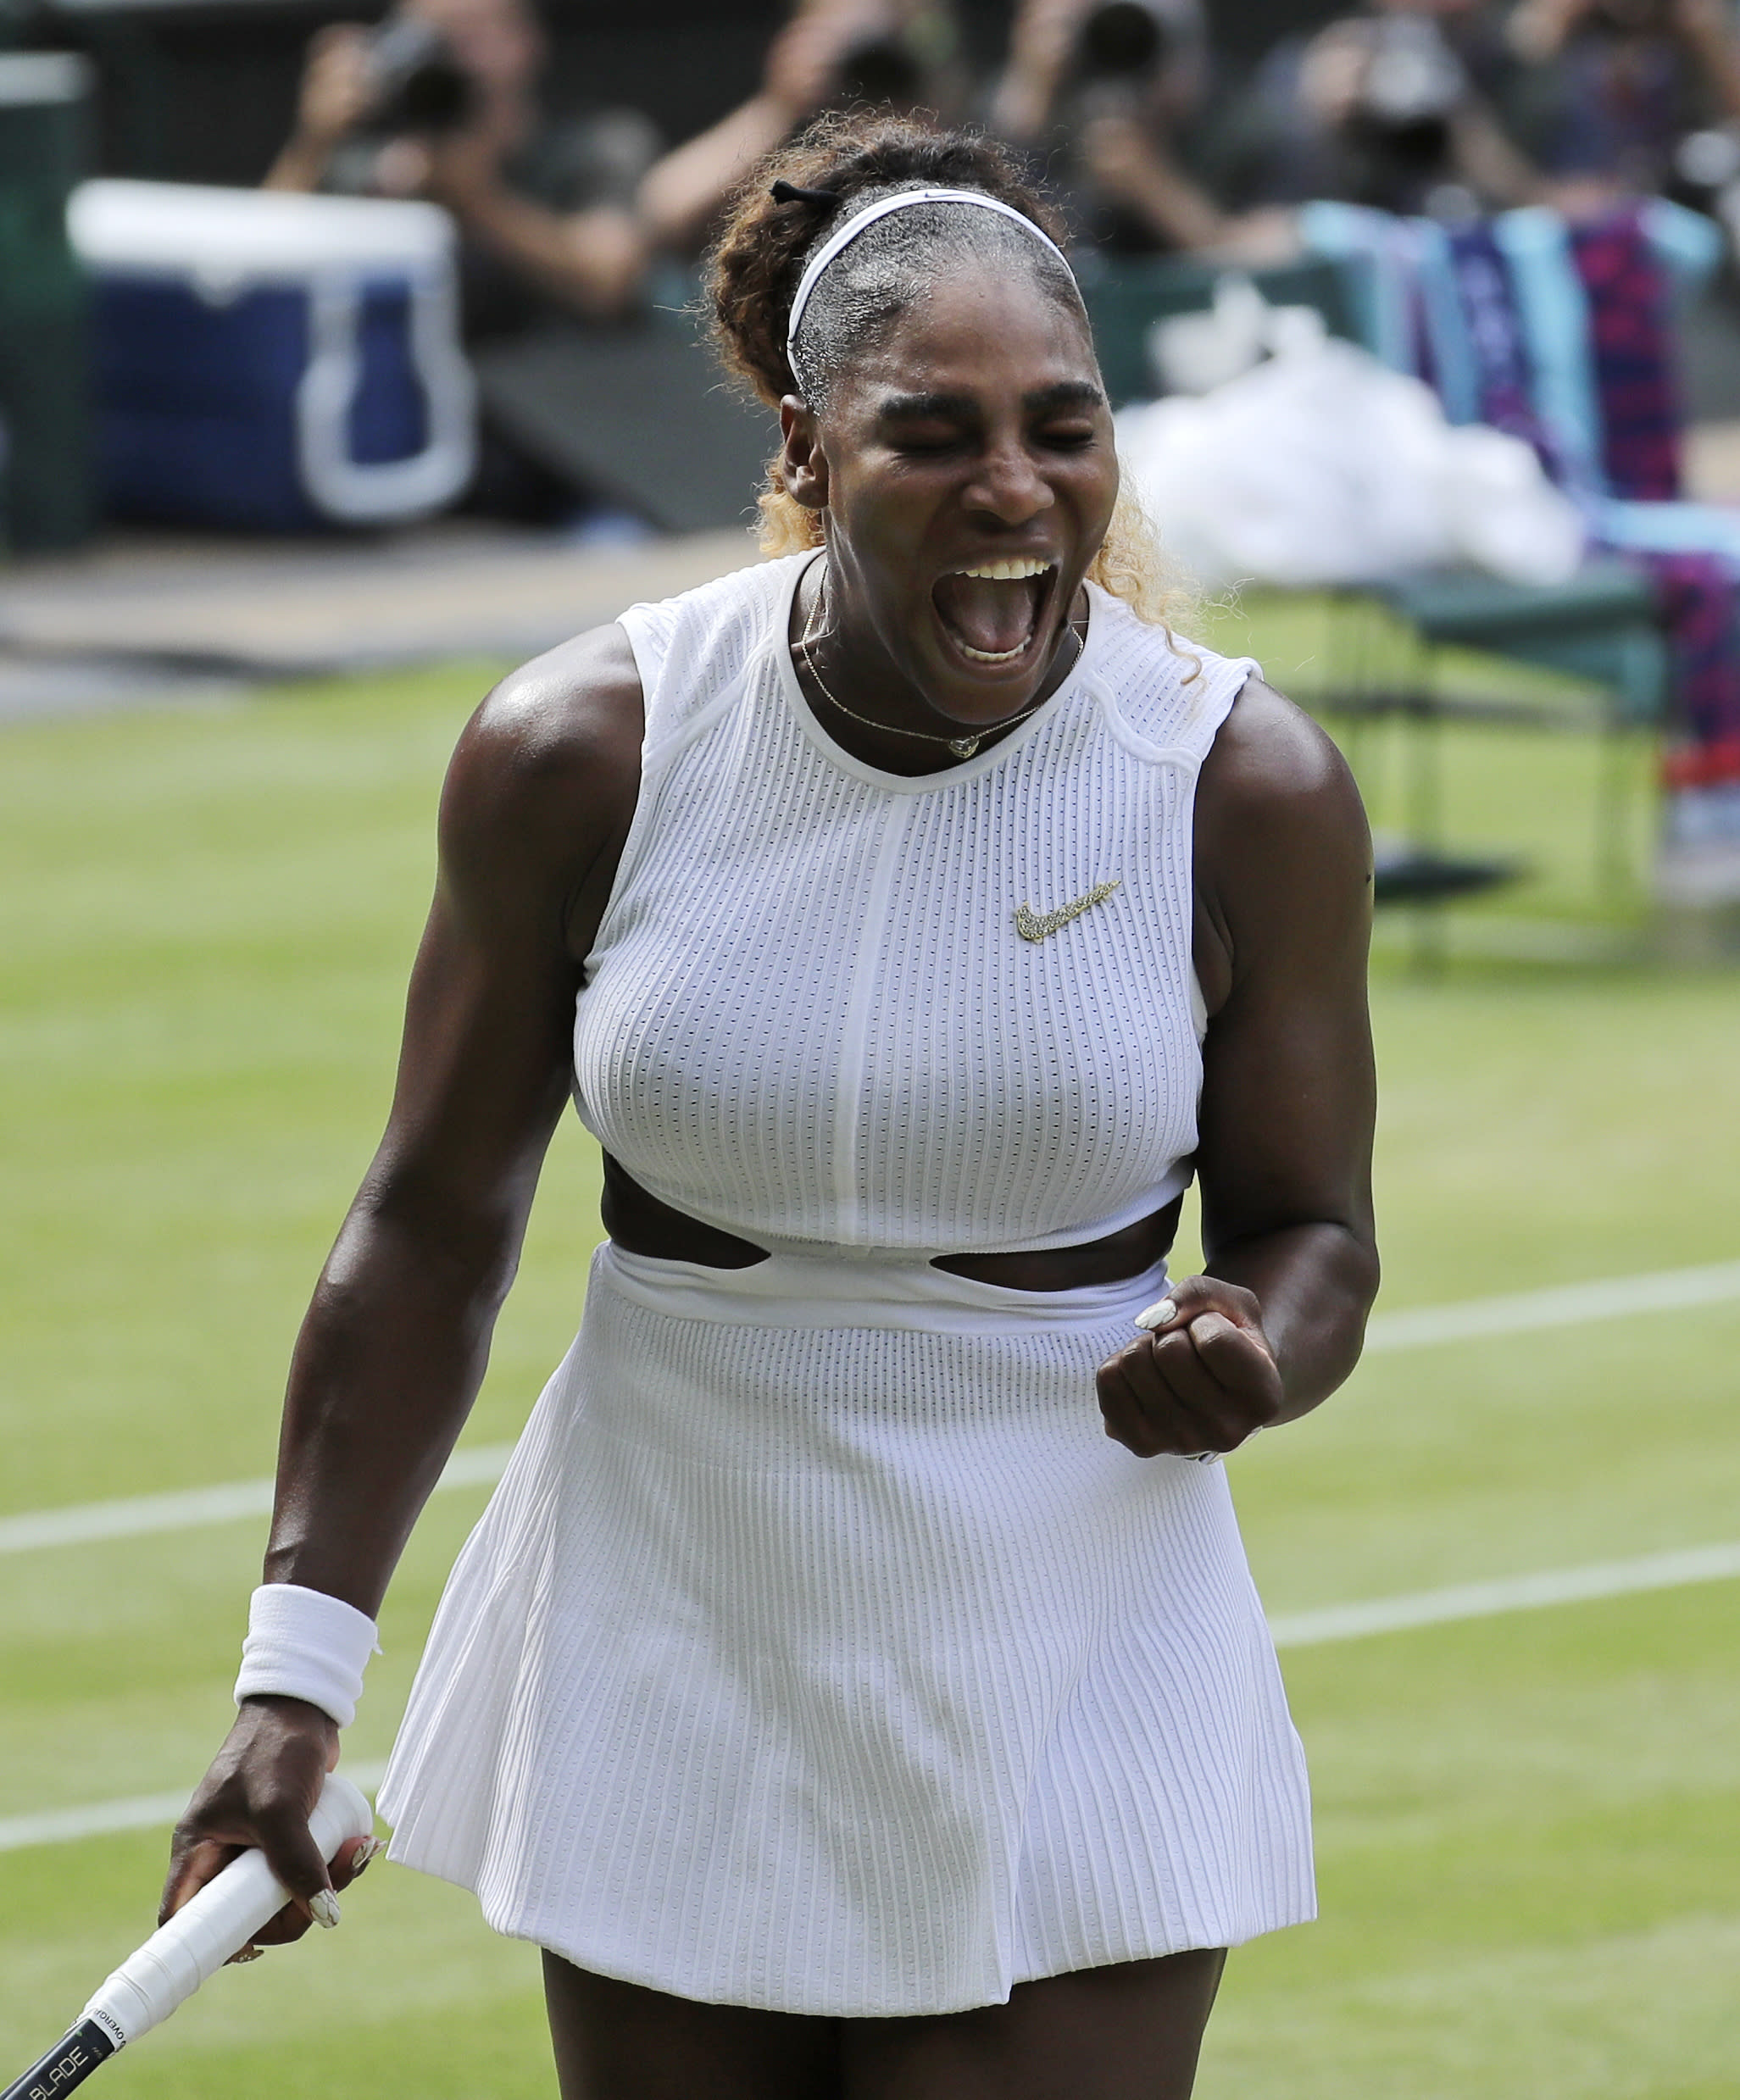 Forty-something Tiger Woods burns bright in inspiring Serena Williams